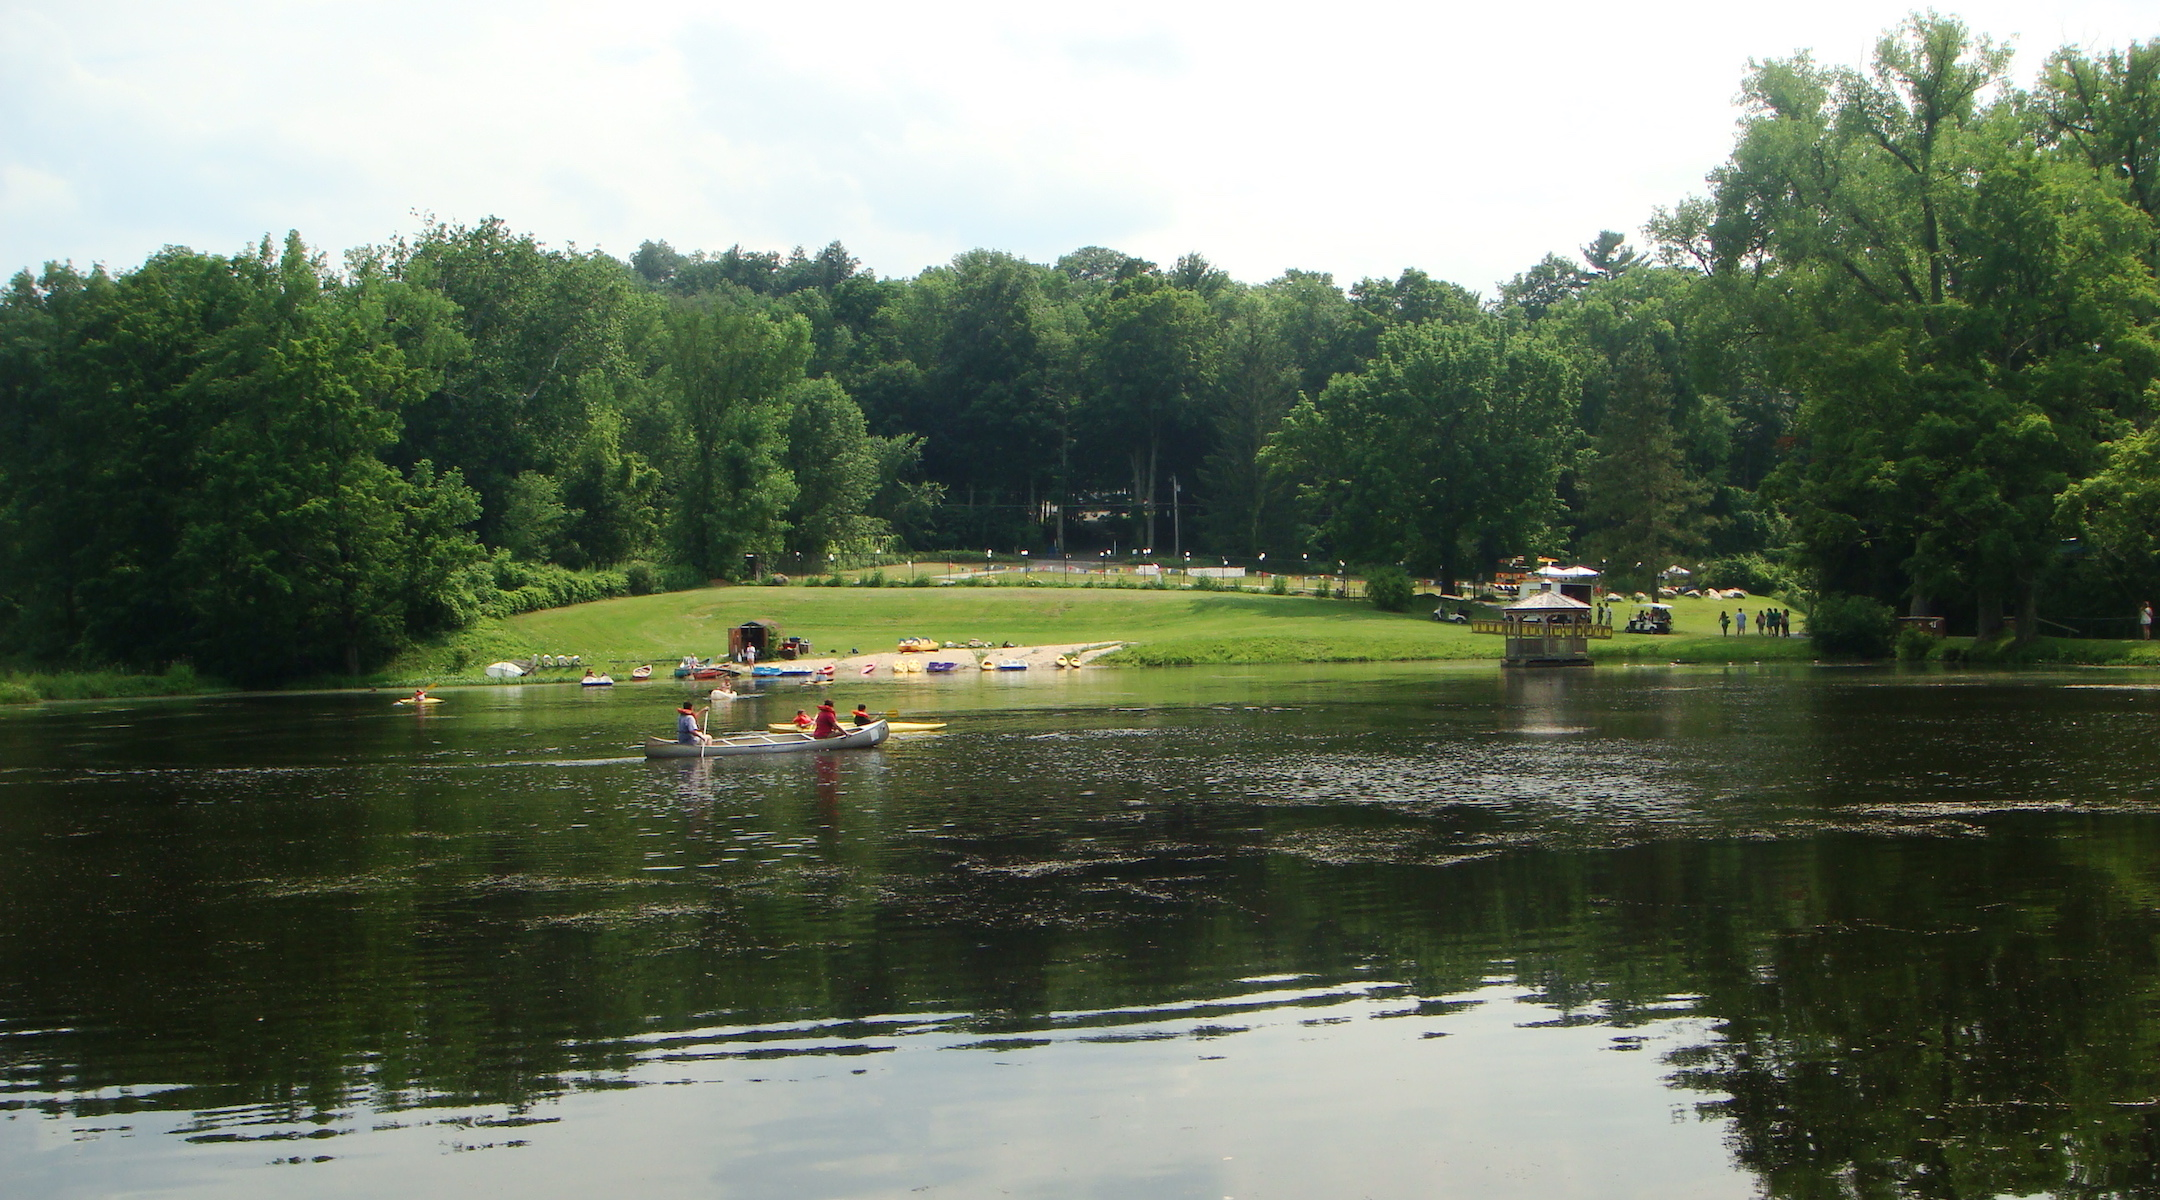 A view of the lake at the Union for Reform Judaism's Eisner Camp in Massachusetts. (Wikimedia Commons)